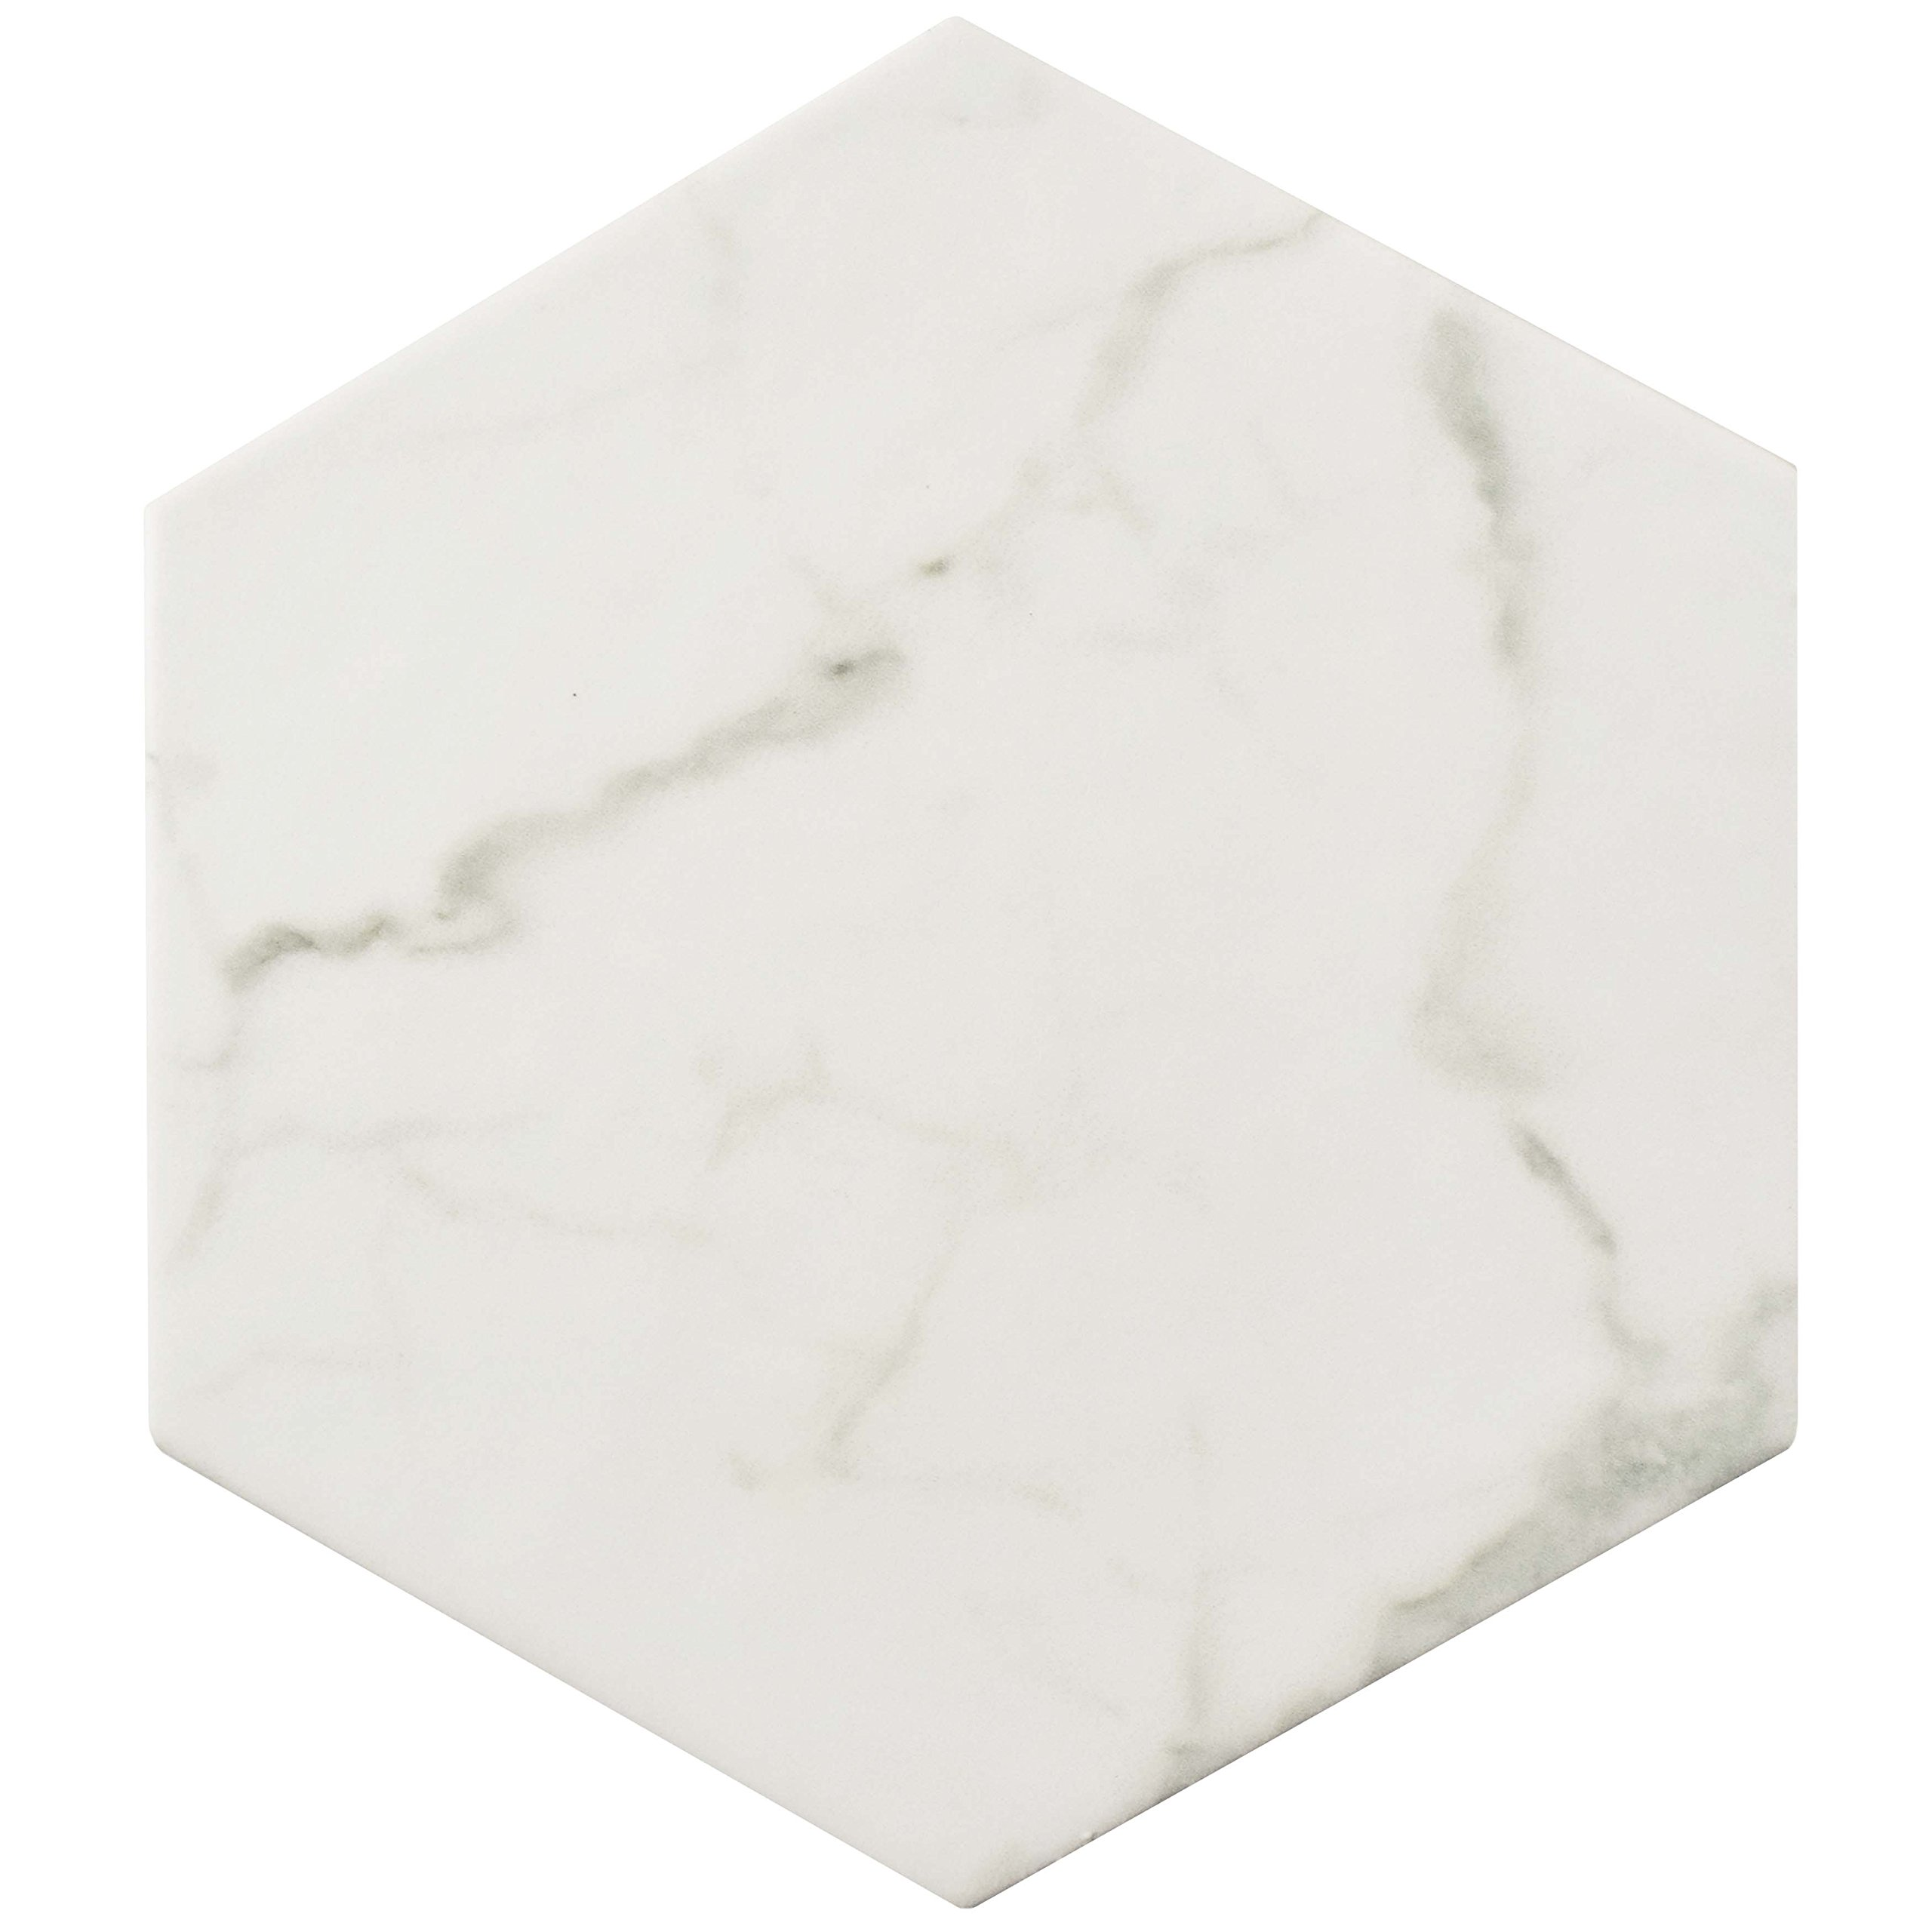 SomerTile FEQCRX Murmur Carrara Hexagon Porcelain Floor & Wall Tile, 7'' x 8'' (Pack of 25)